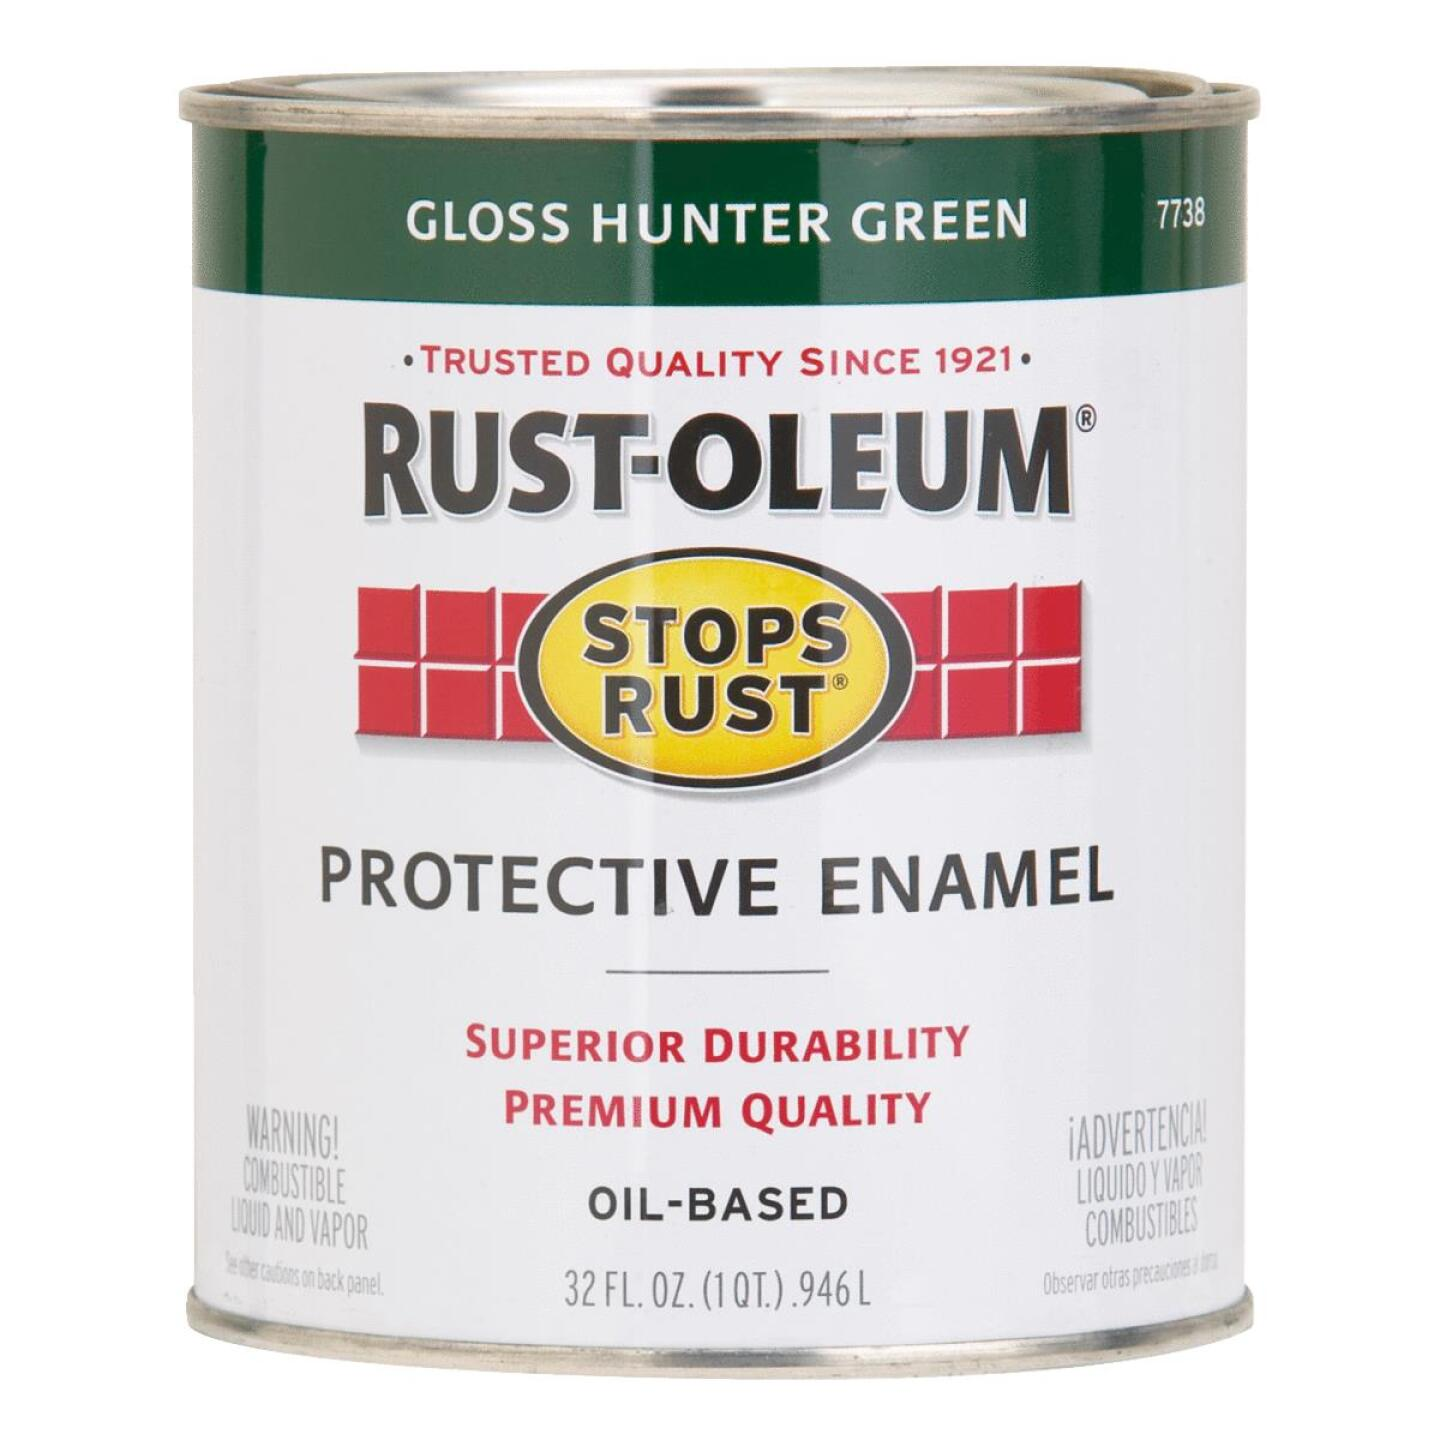 Rust-Oleum Stops Rust Oil Based Gloss Protective Rust Control Enamel, Hunter Green, 1 Qt. Image 1